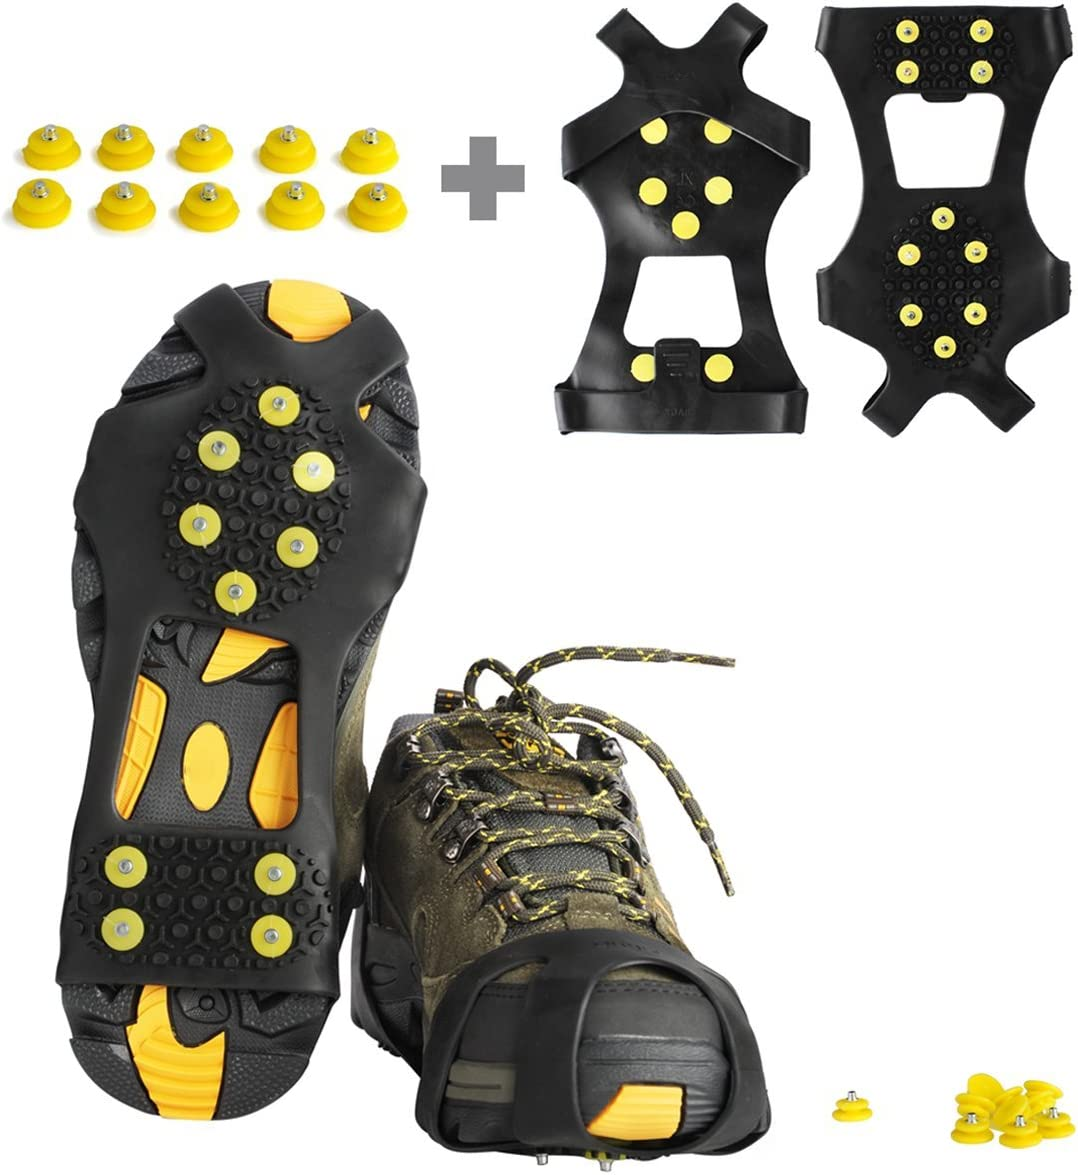 willceal Ice Cleats, Ice Grippers Traction Cleats Shoes and Boots Rubber Snow Shoe Spikes Crampons with 10 Steel Studs Cleats Prevent Outdoor Activities from Wrestling